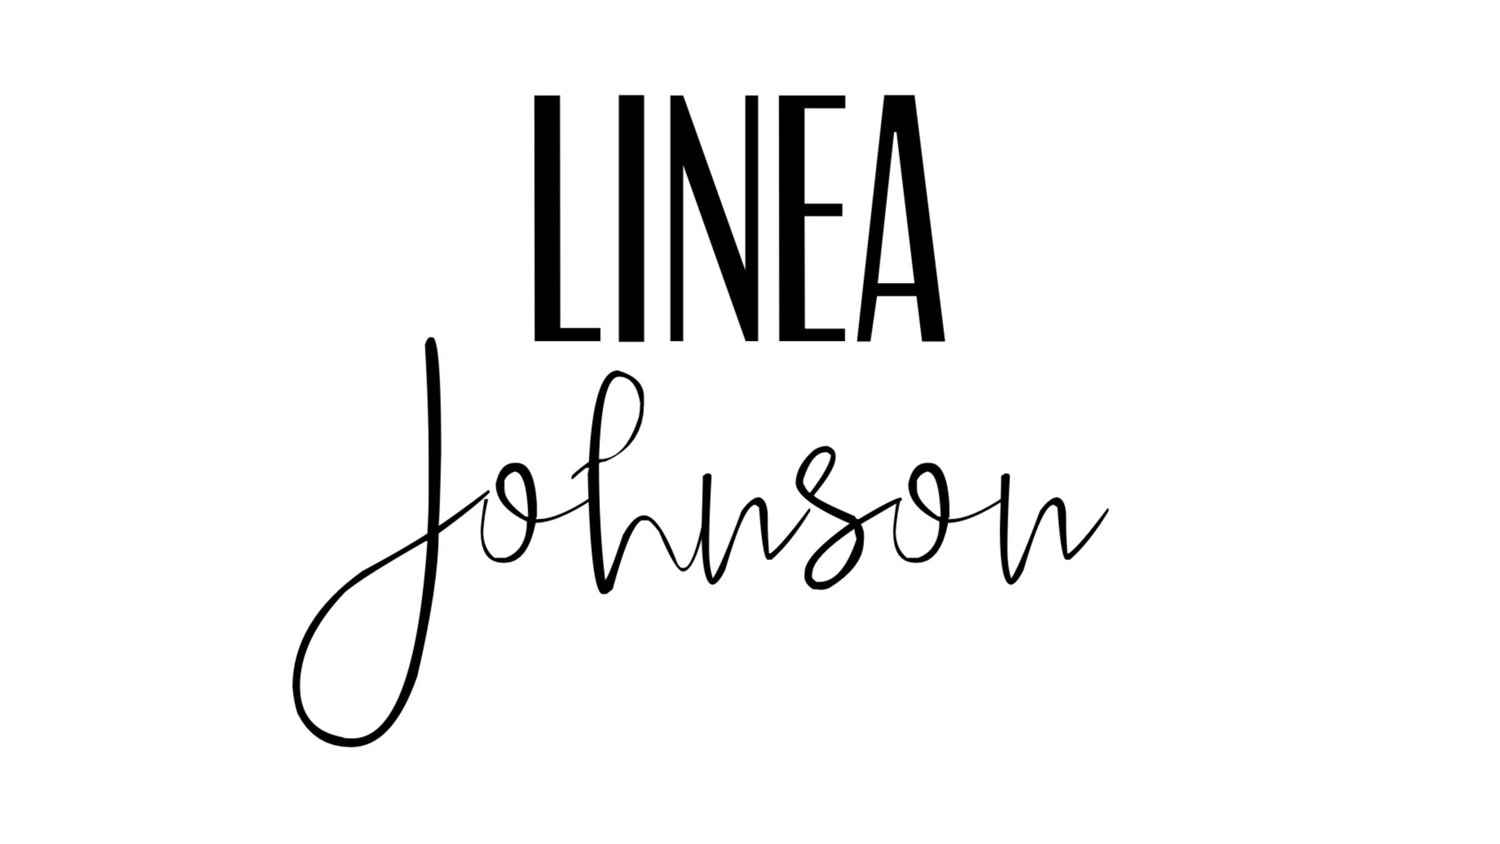 Linea Johnson